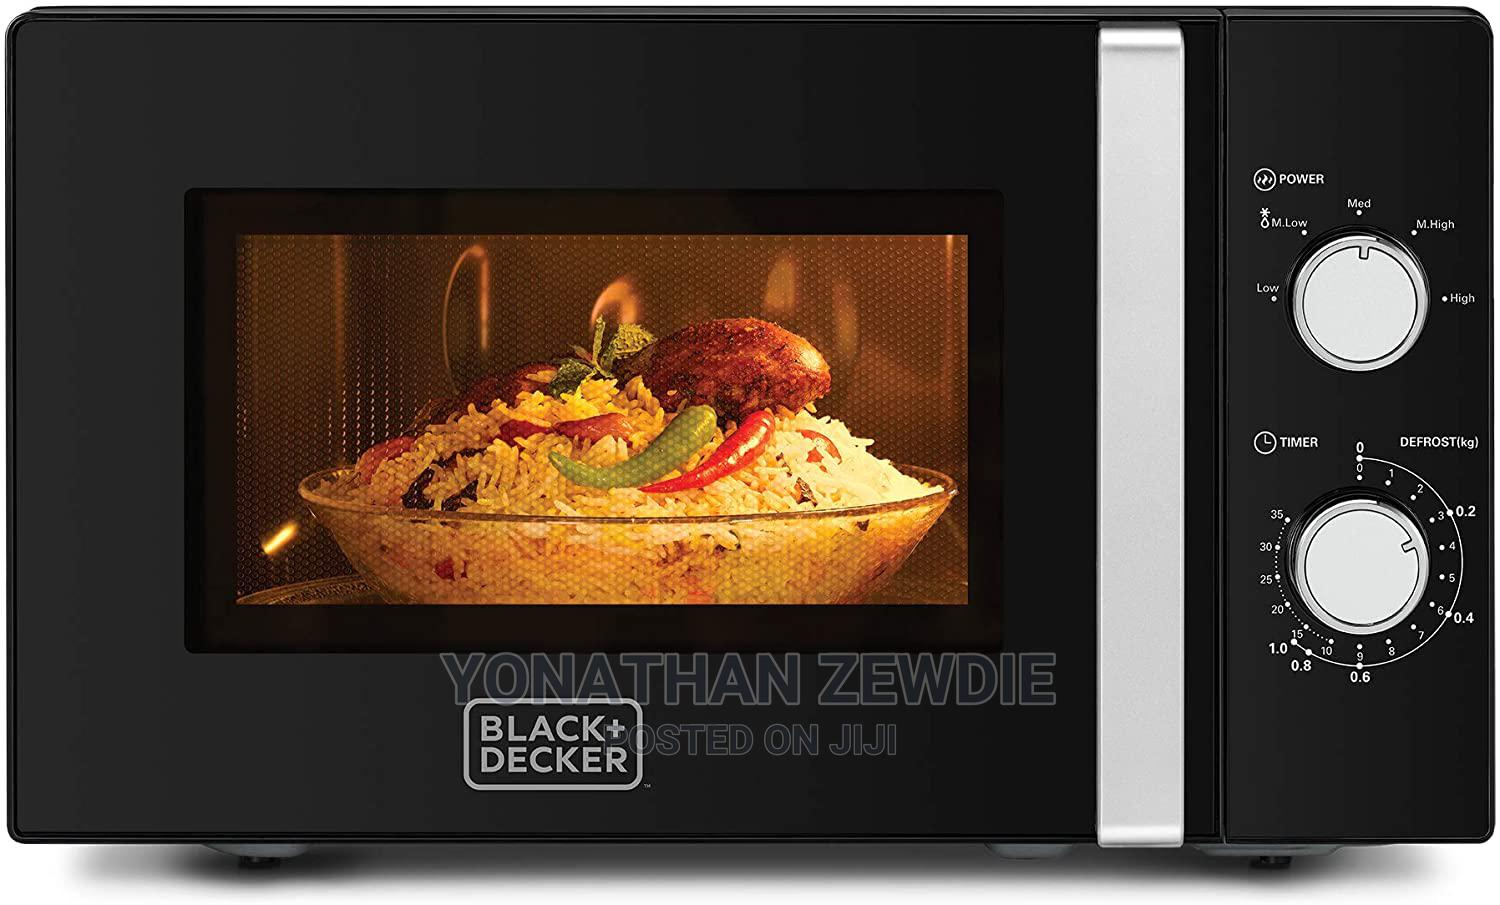 black decker 20l microwave oven with defrost function blac